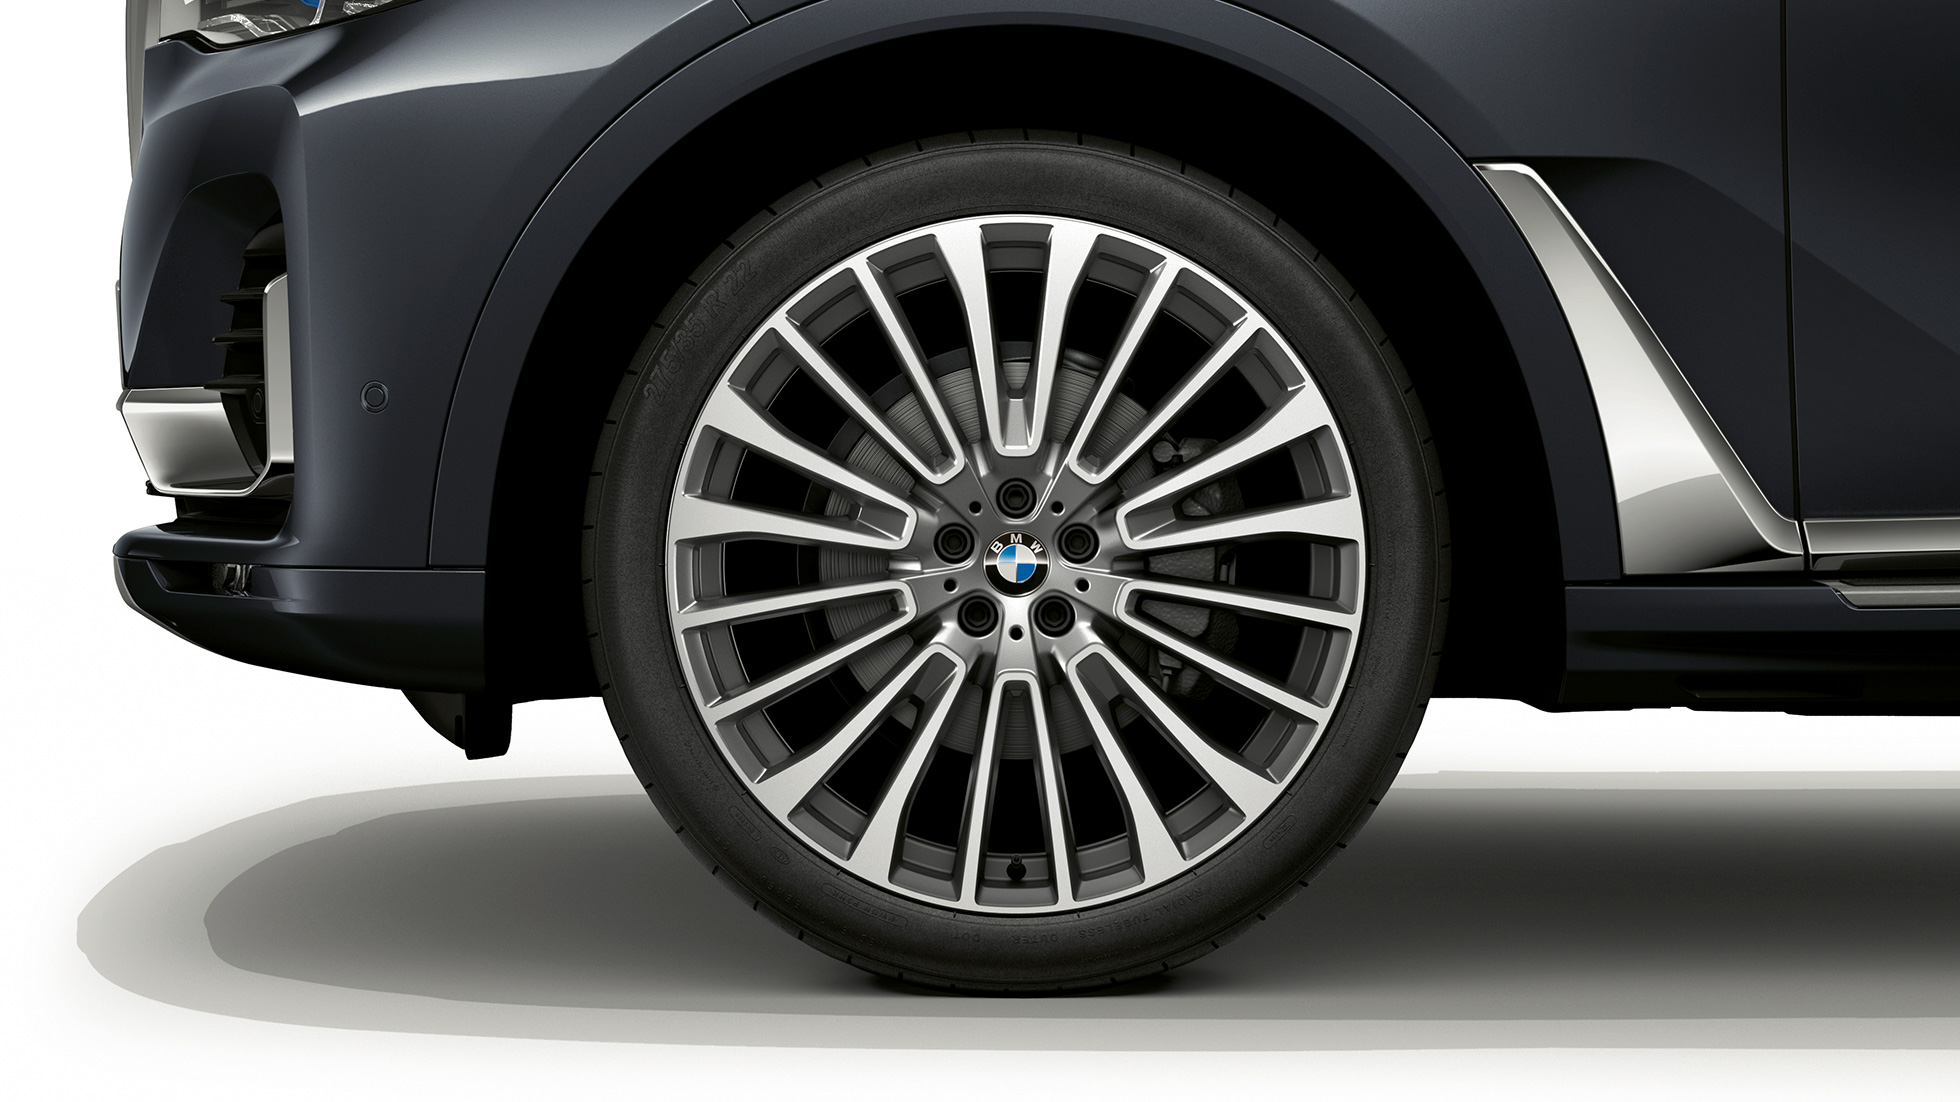 Close-up of the light alloy wheel of the BMW X7 with Design Pure Excellence features.